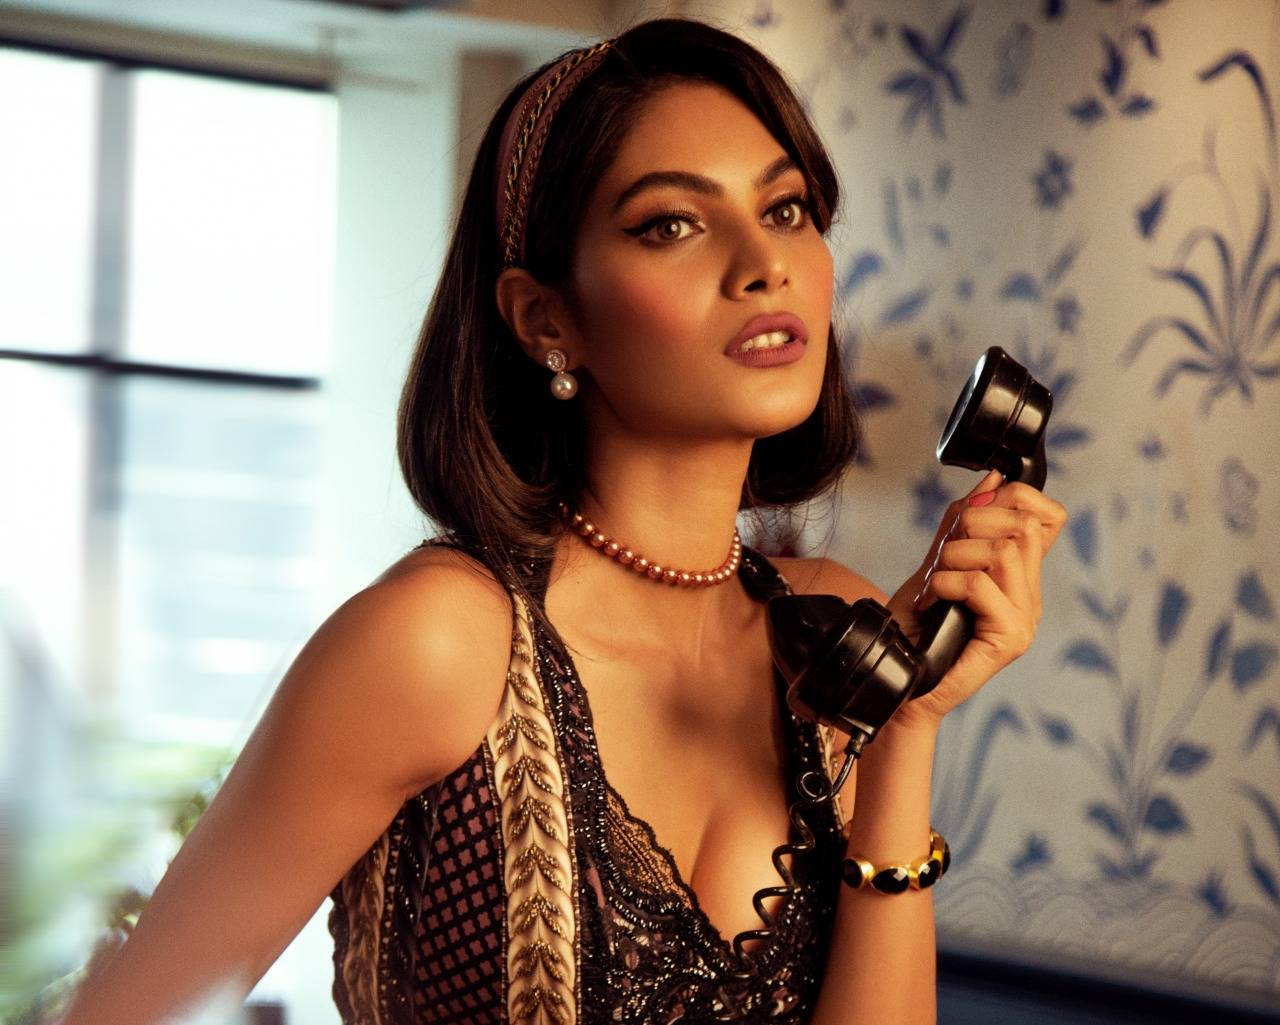 Lopamudra Raut goes vintage and classy in her latest photoshoot!